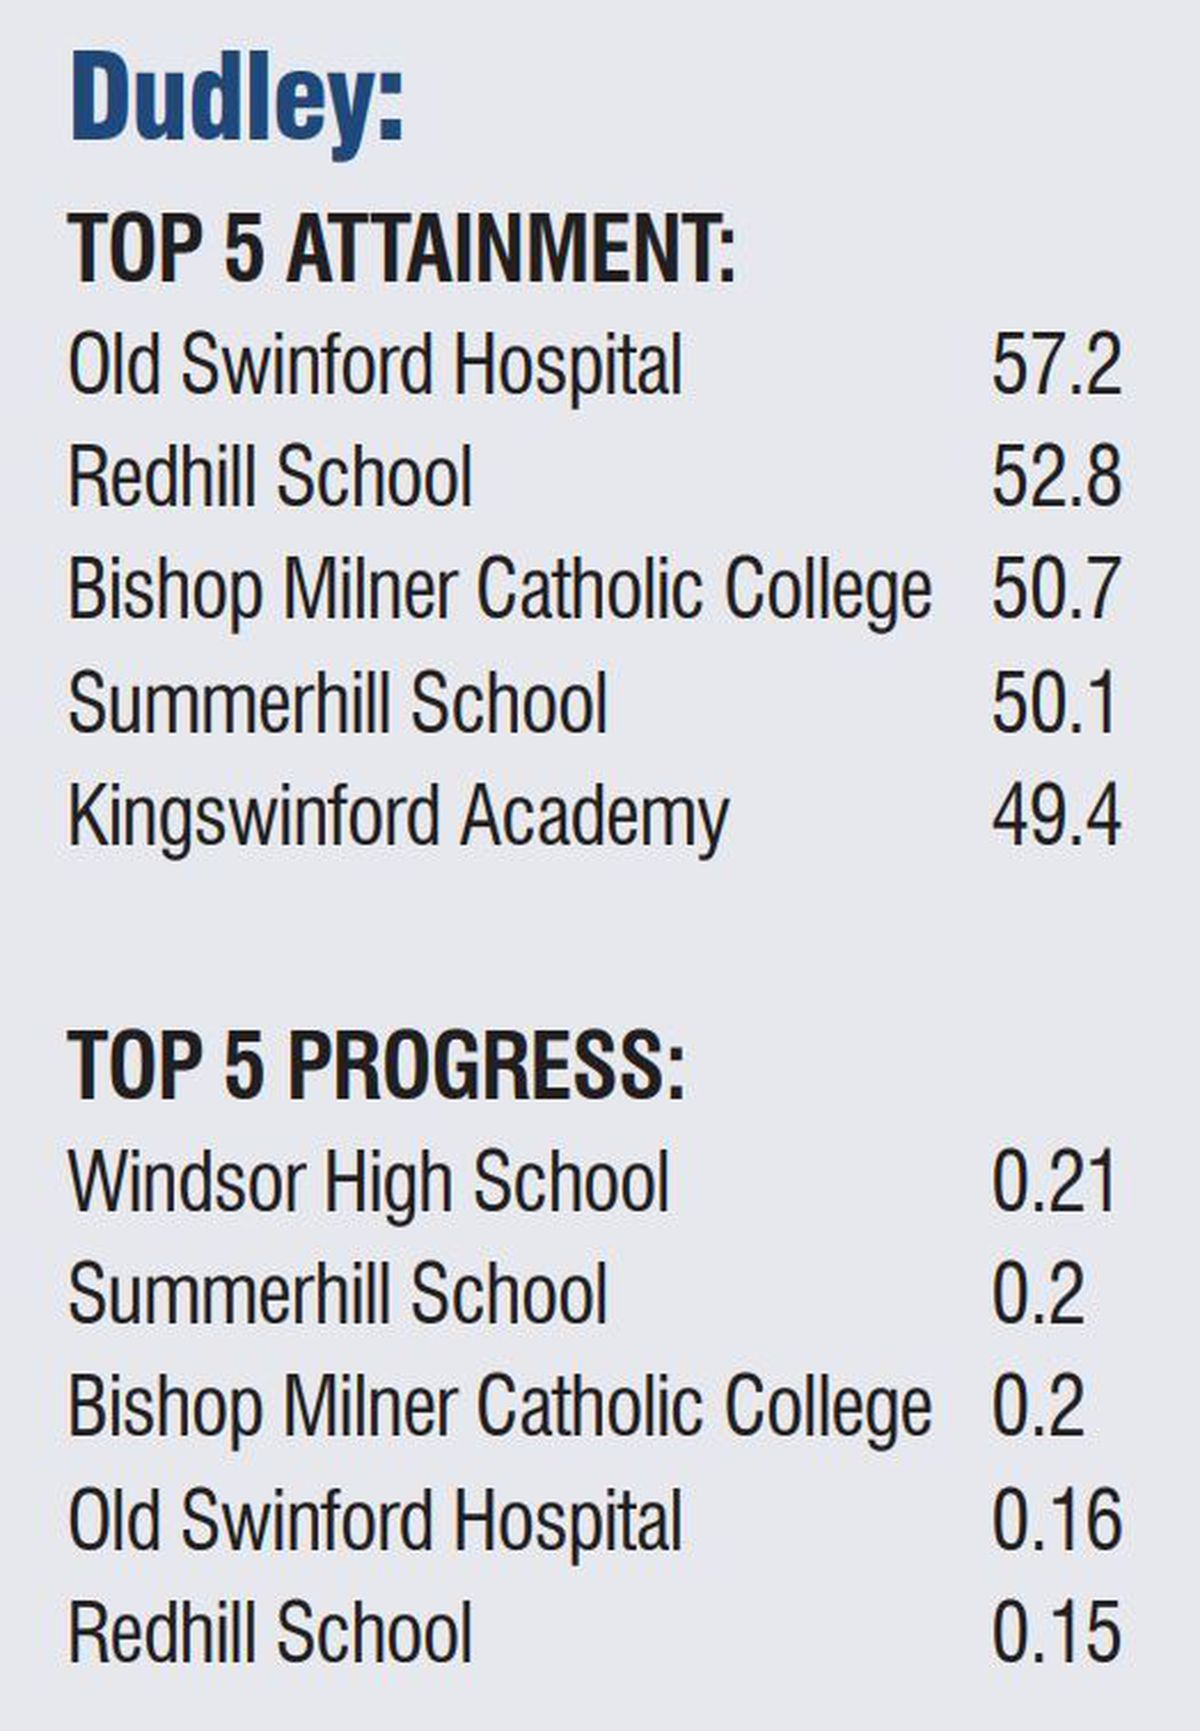 Dudley schools top five for attainment and progress